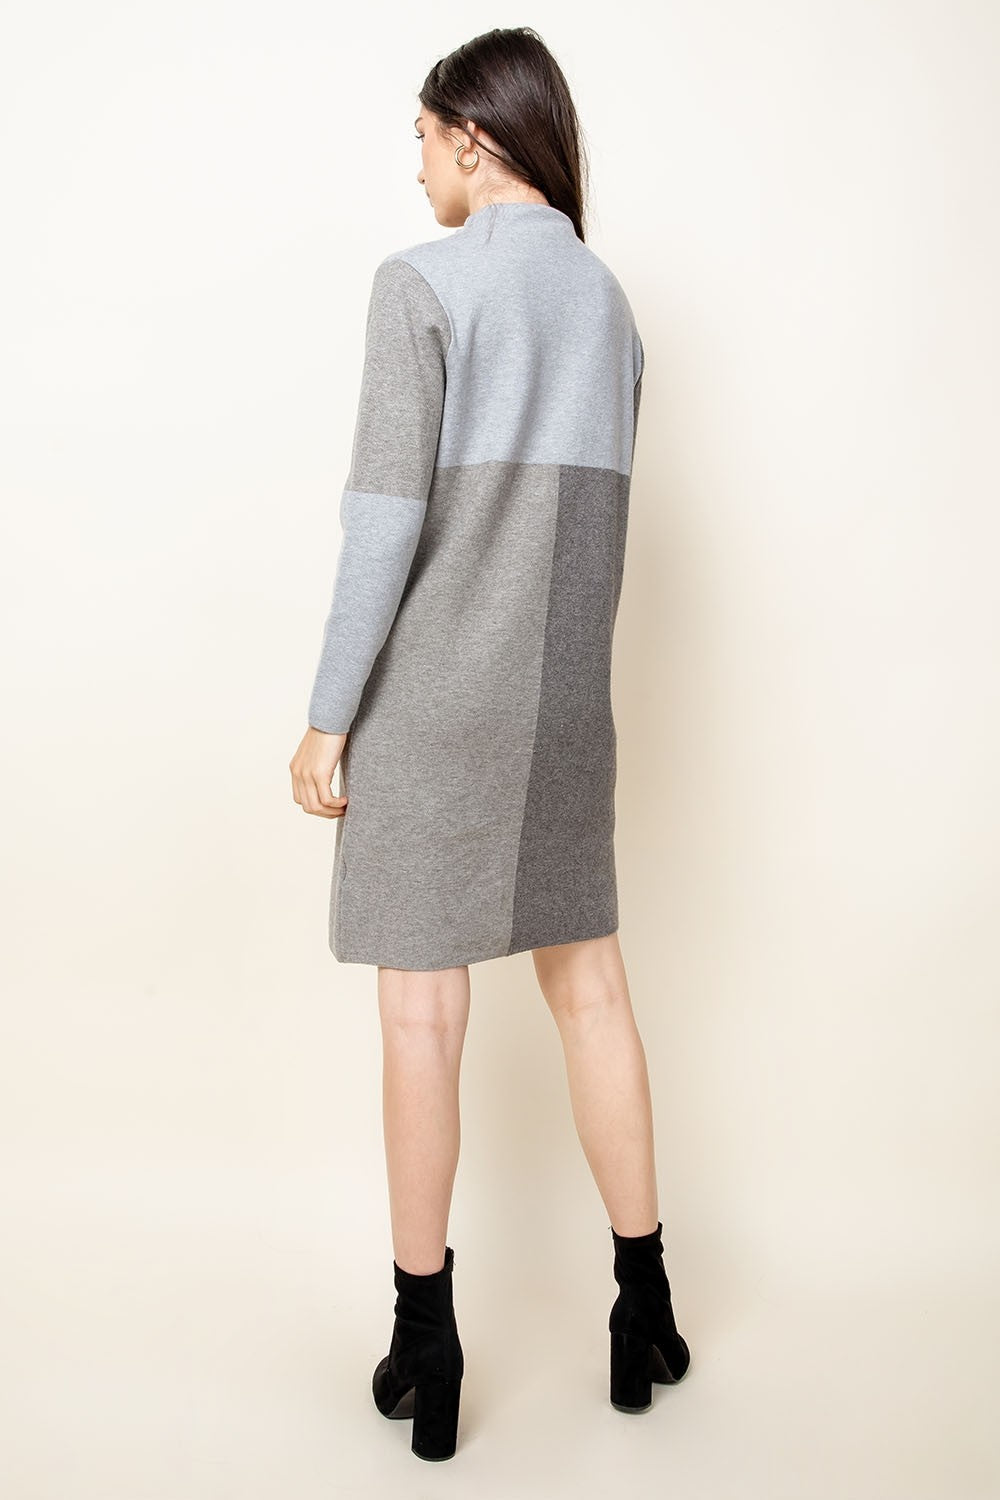 Grey Colorblock Sweater Dress